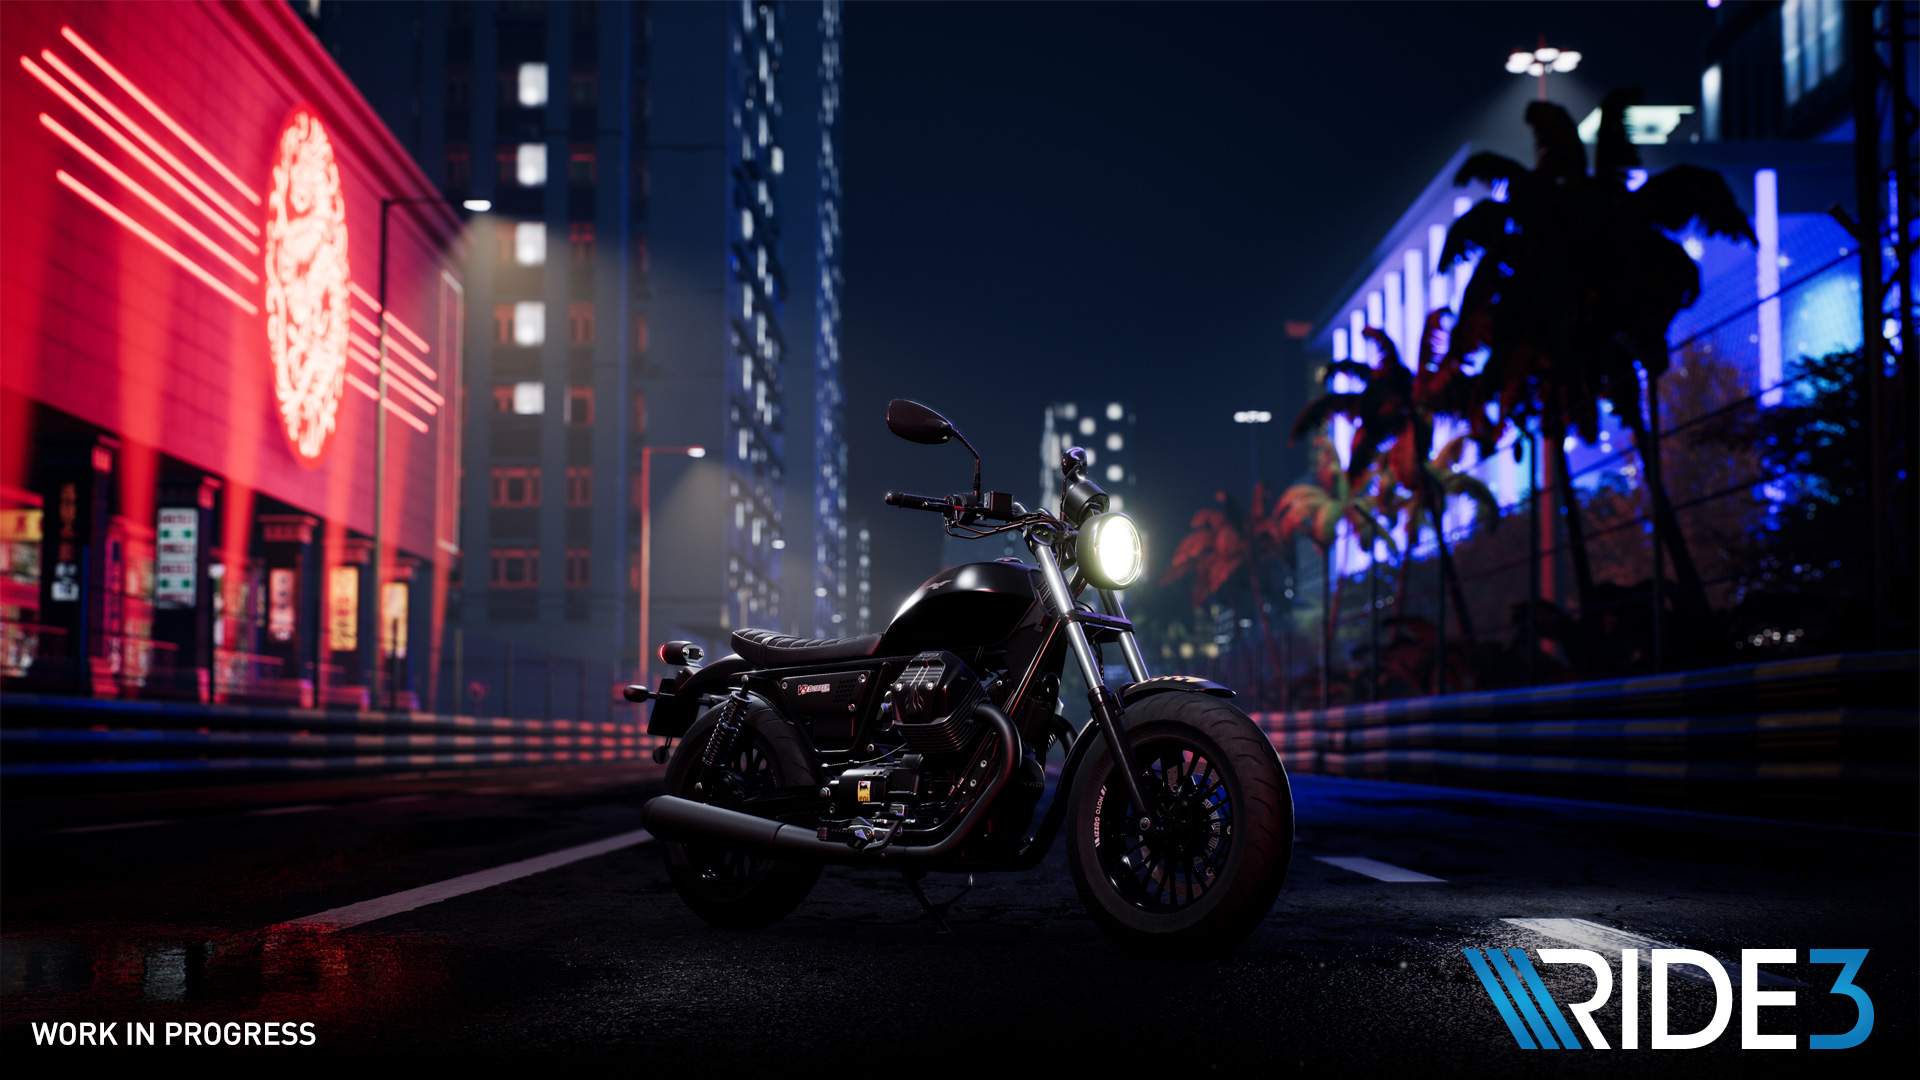 Ride 3 leaves rubber on the pavement on November 8 screenshot